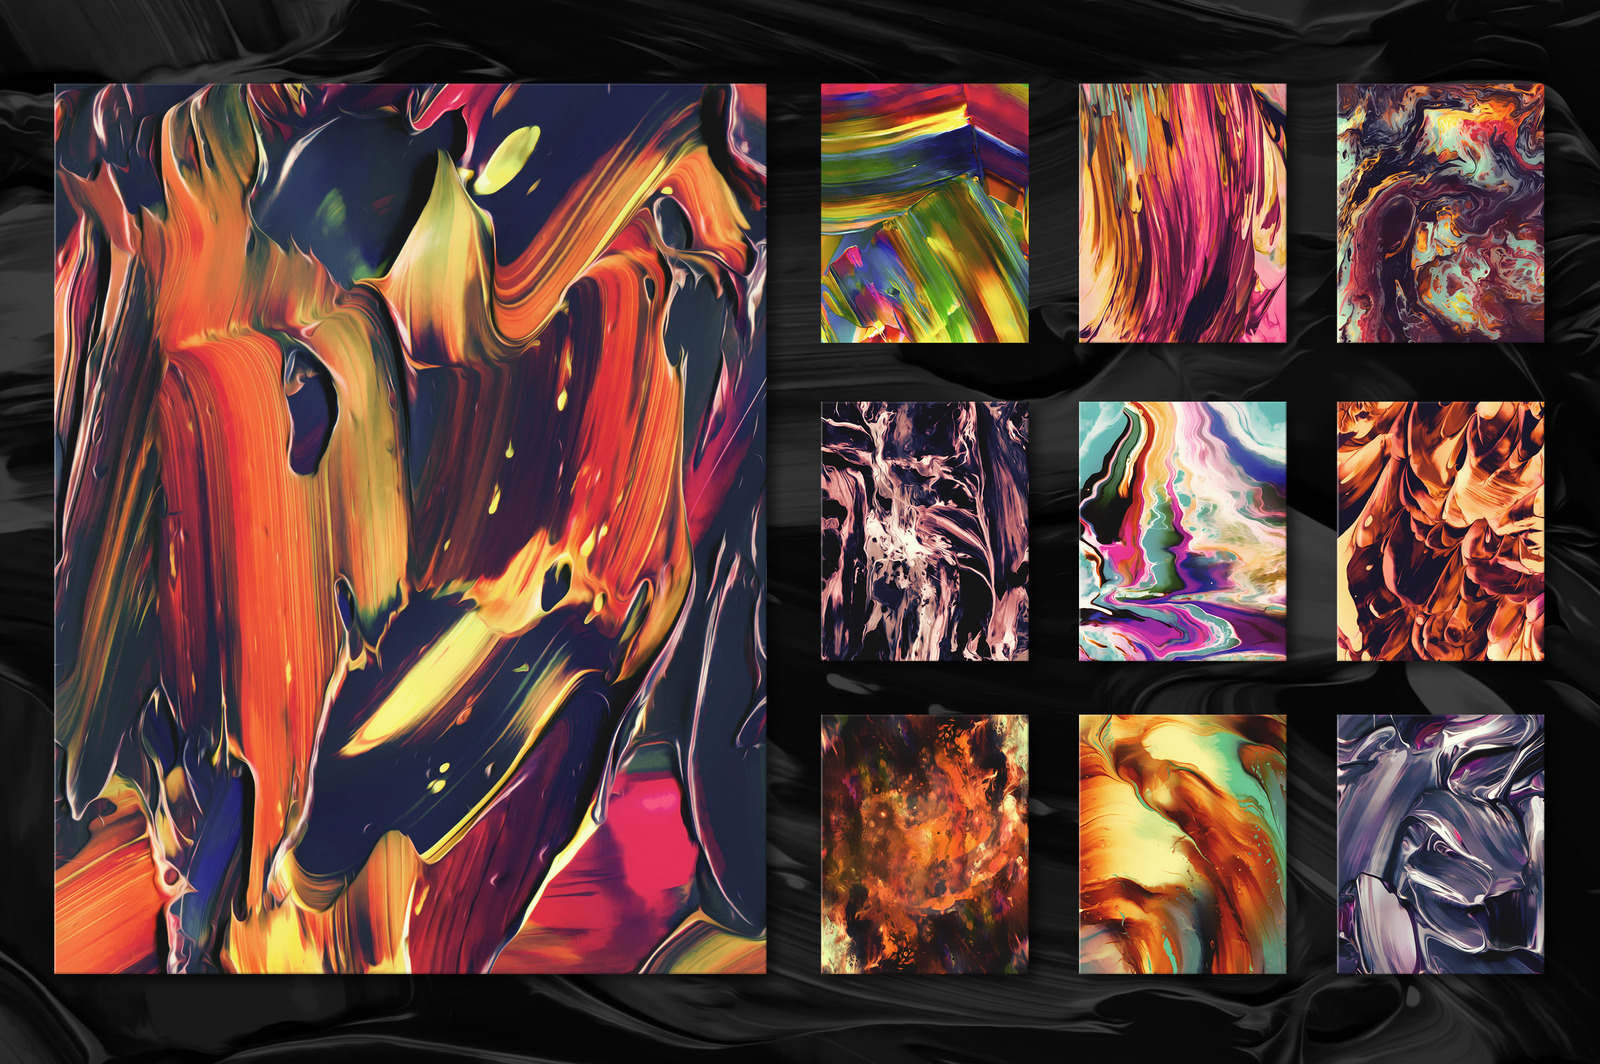 Flow, Vol. 2: 100 Fluid Abstract Paintings